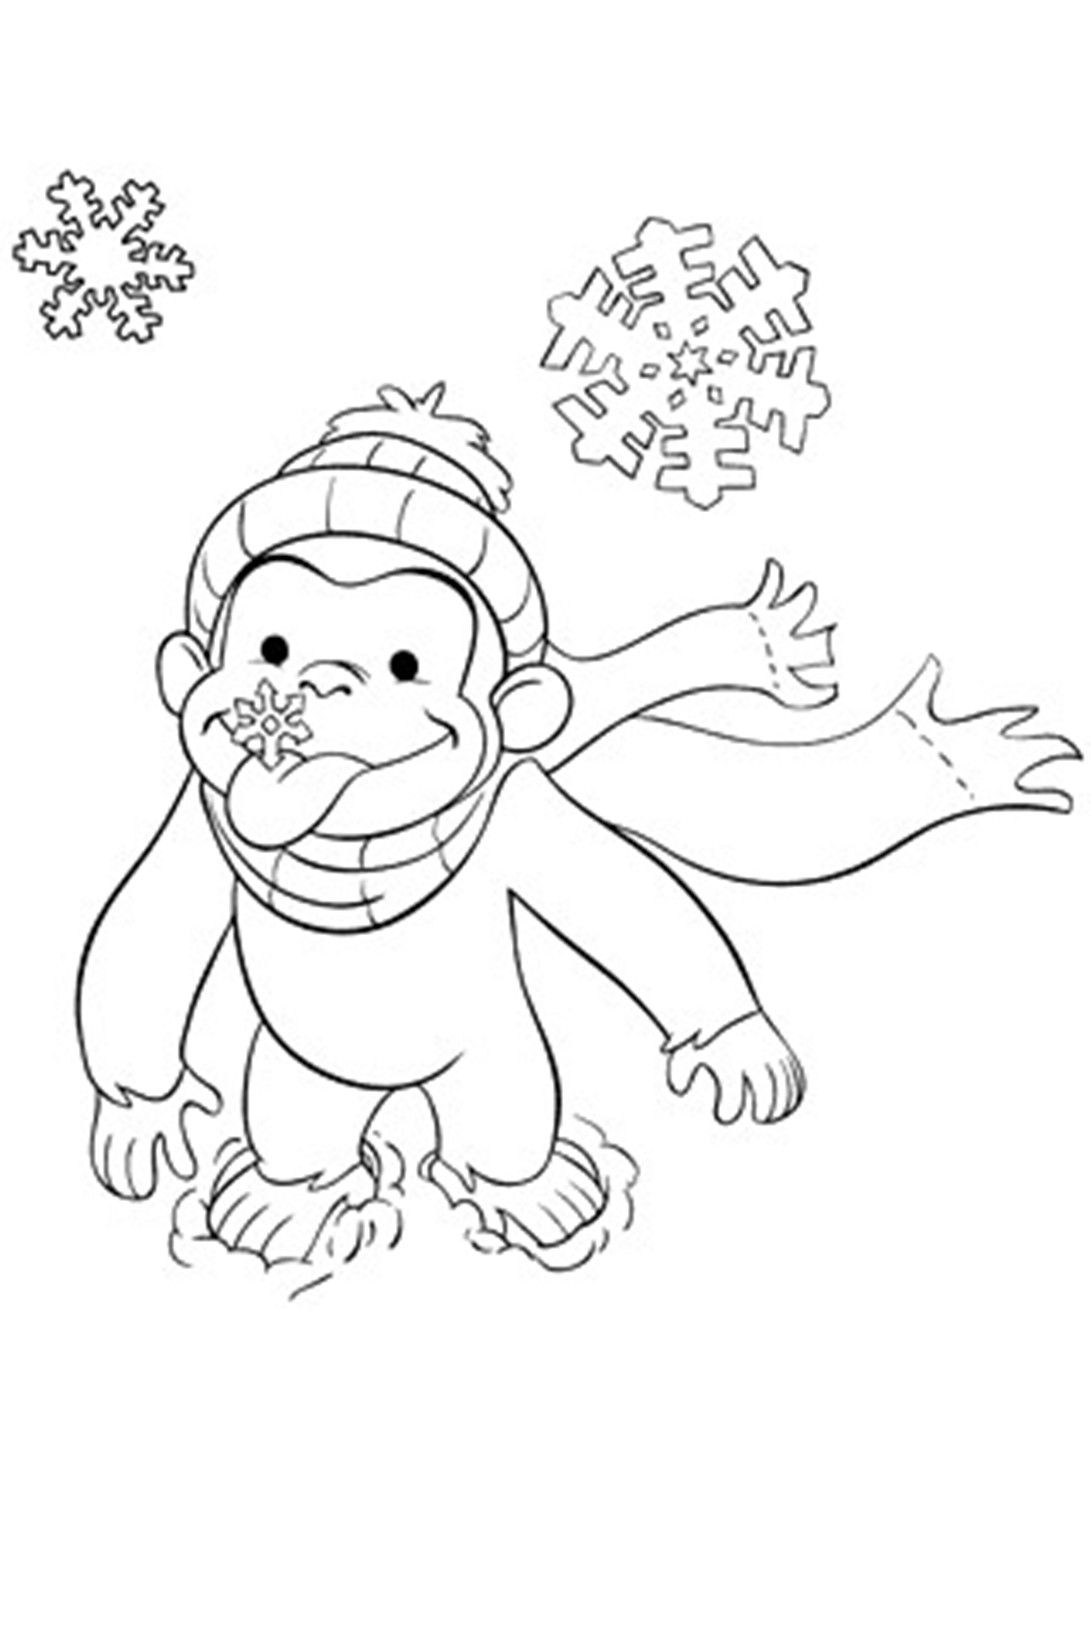 Monkey Christmas Coloring Pages Curious George Coloring Pages Christmas Coloring Pages Monkey Coloring Pages